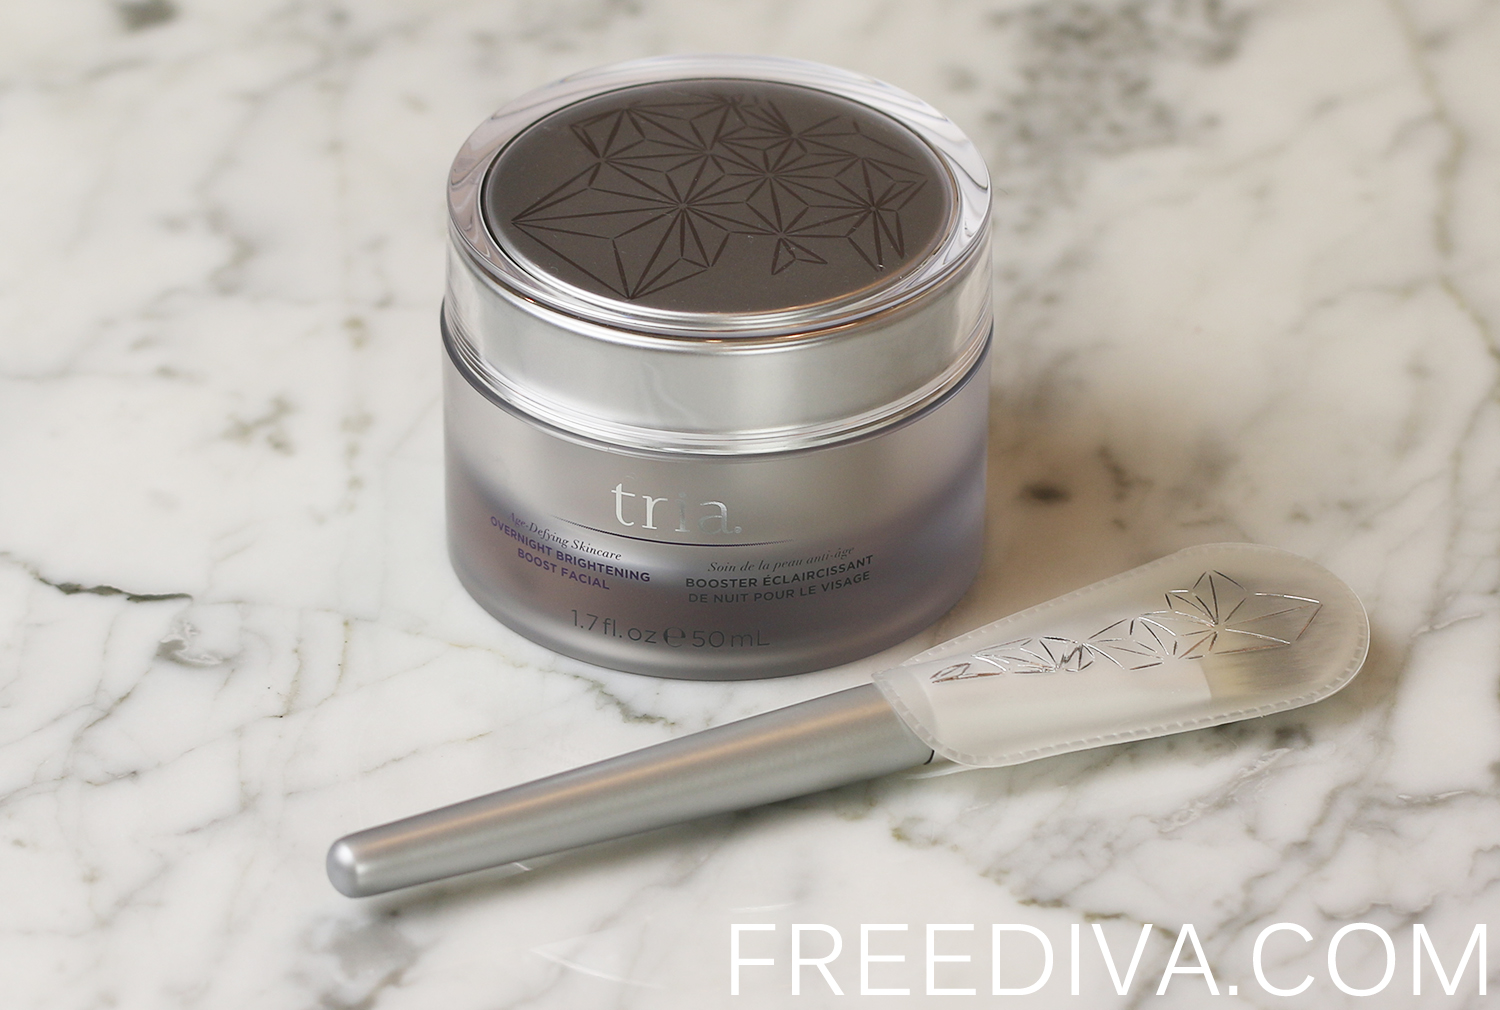 Tria Overnight Brightening Boost Facial Mask